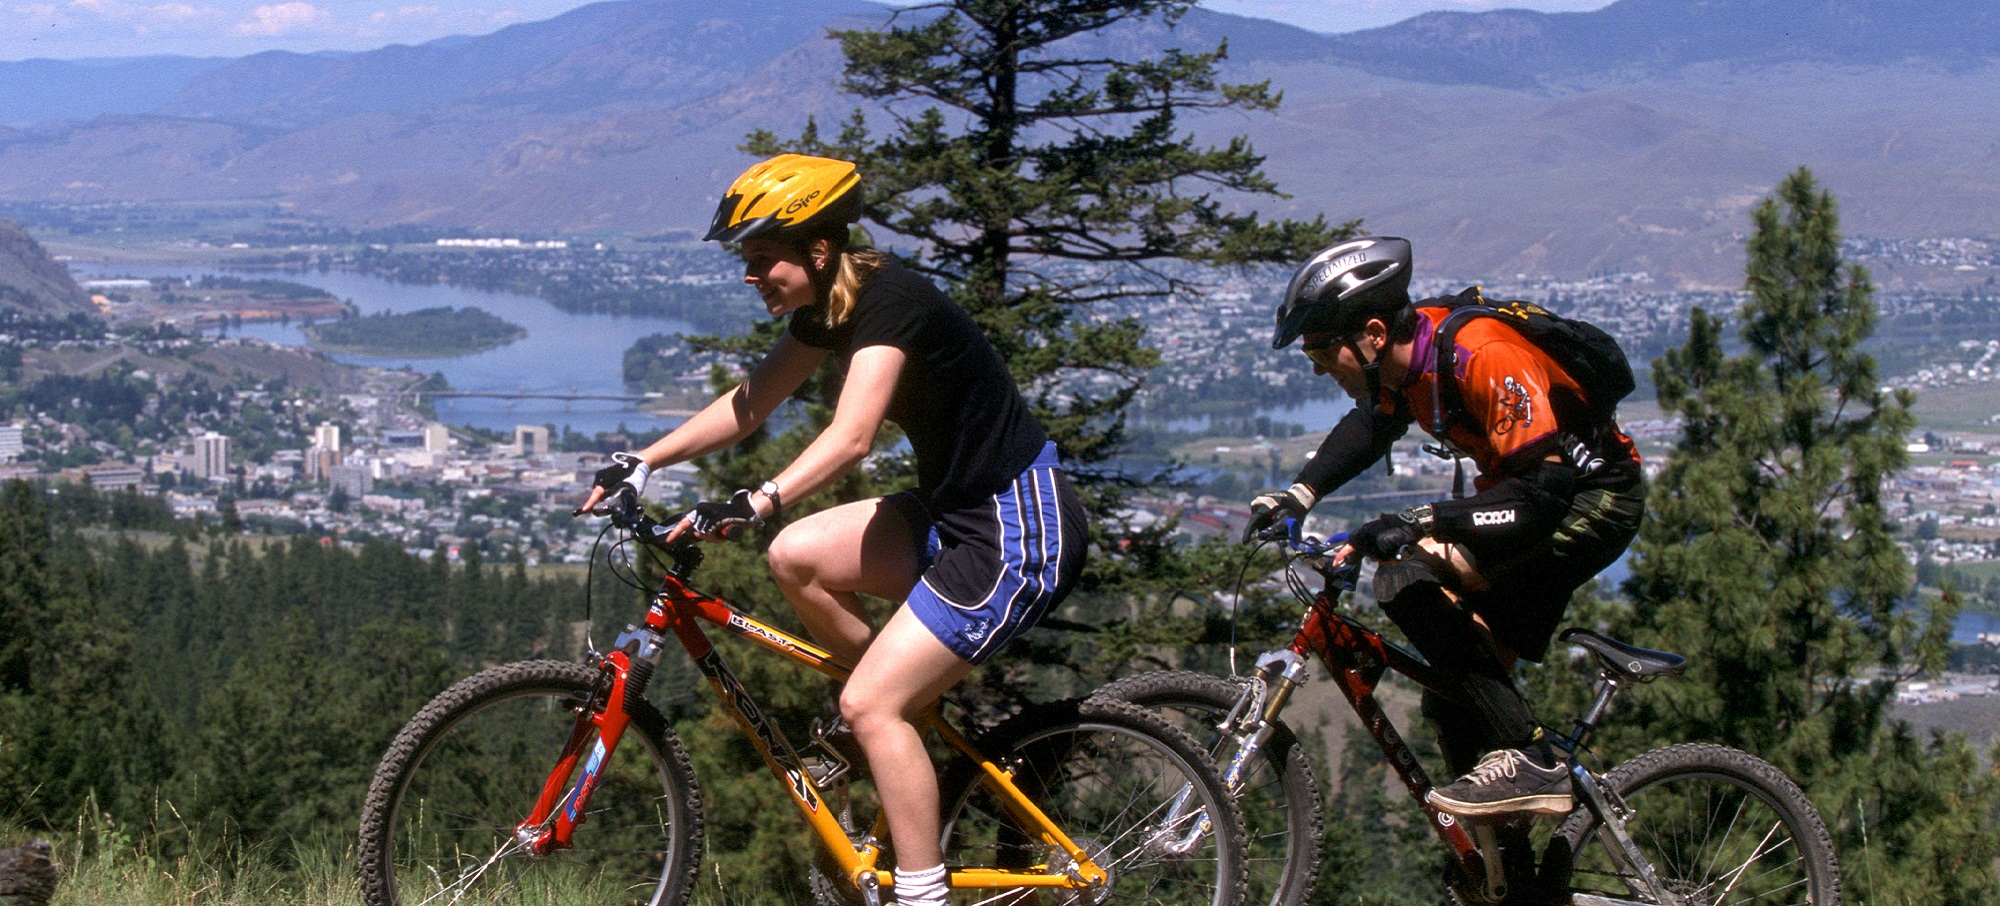 Biking near Kamloops - Don Weixl - TOTA